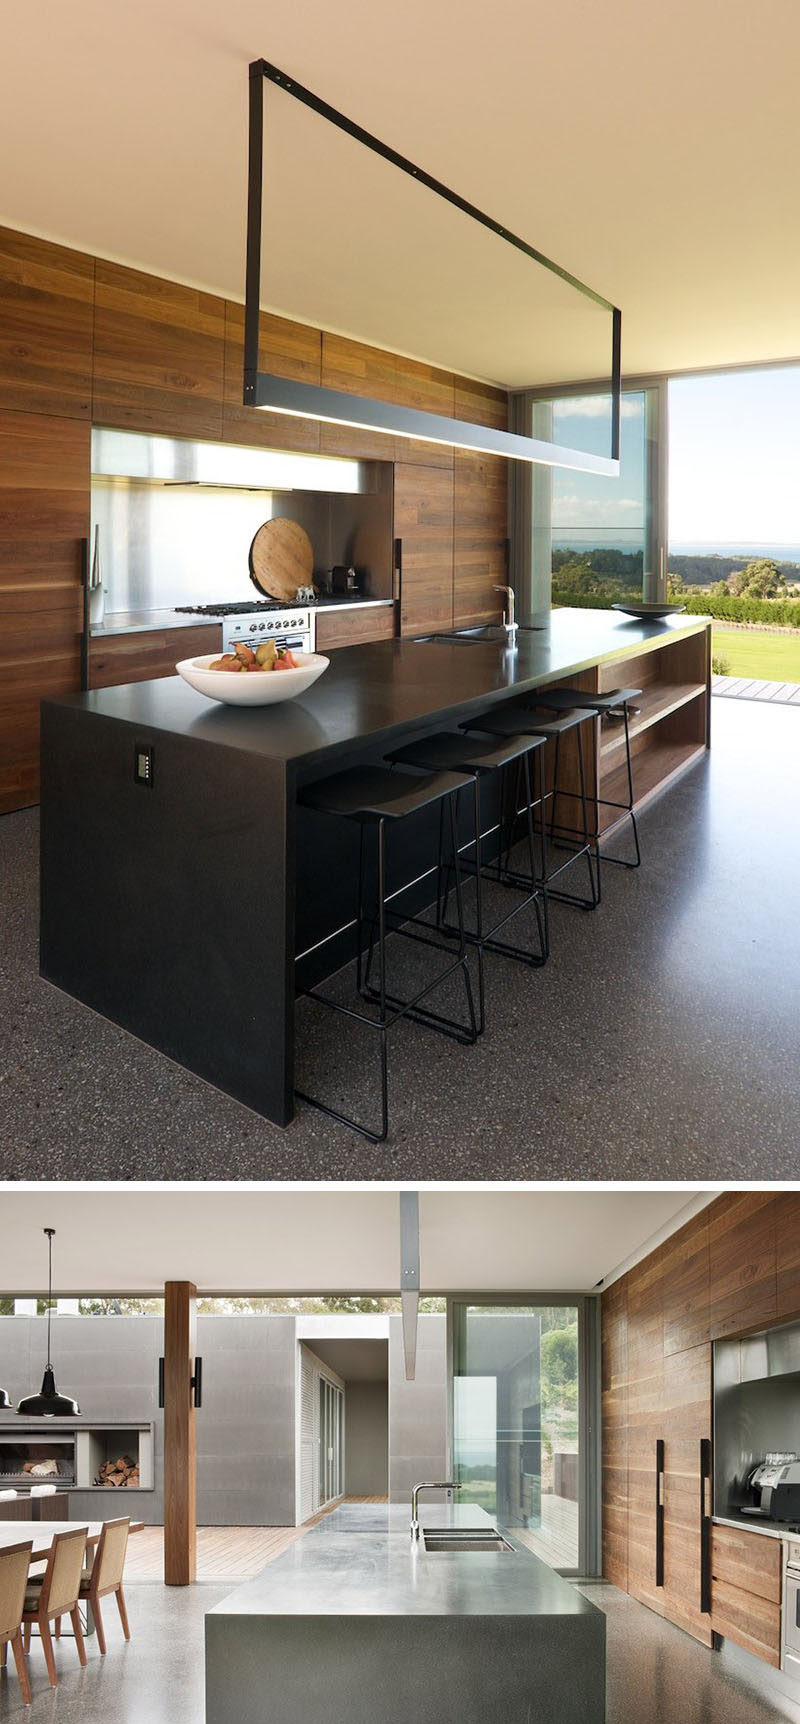 Kitchen Island Lighting Idea Use One Long Light Instead Of Multiple Pendant Lights CONTEMPORIST